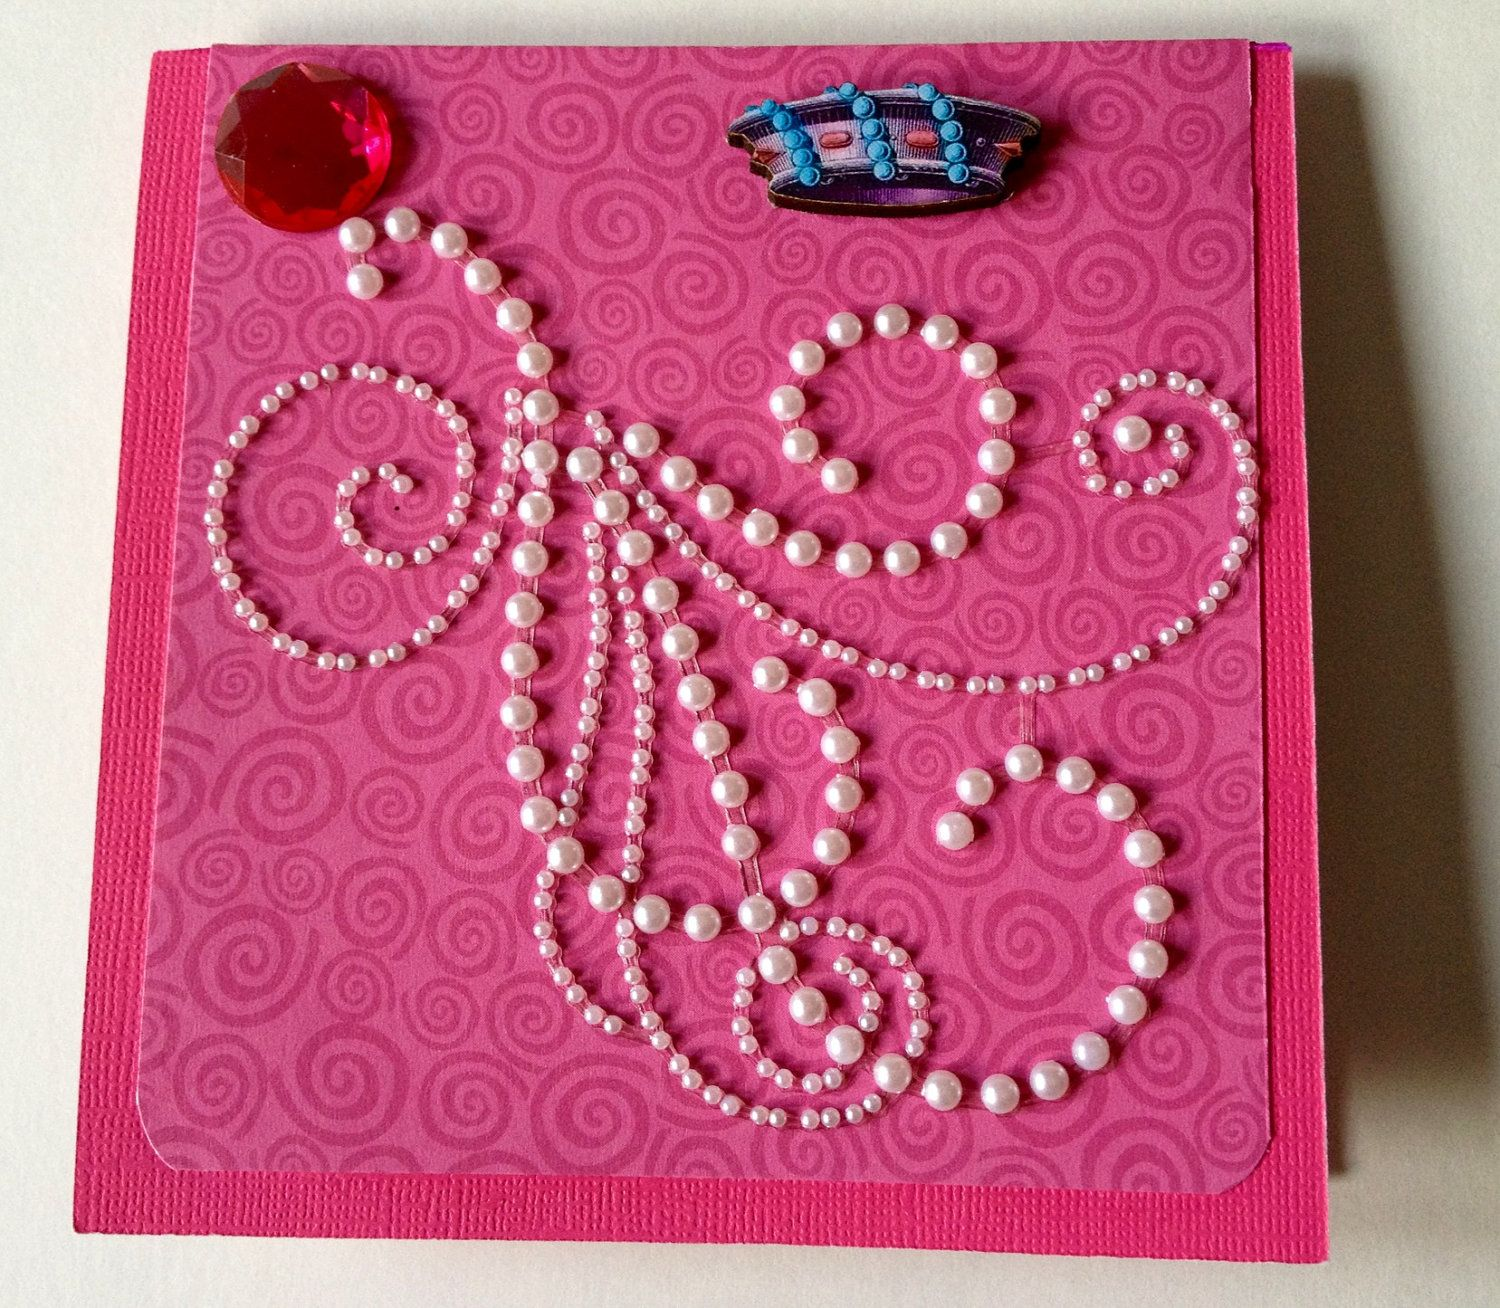 3d Handmade Birthday Card Pearls And Whirls Handmade Birthday